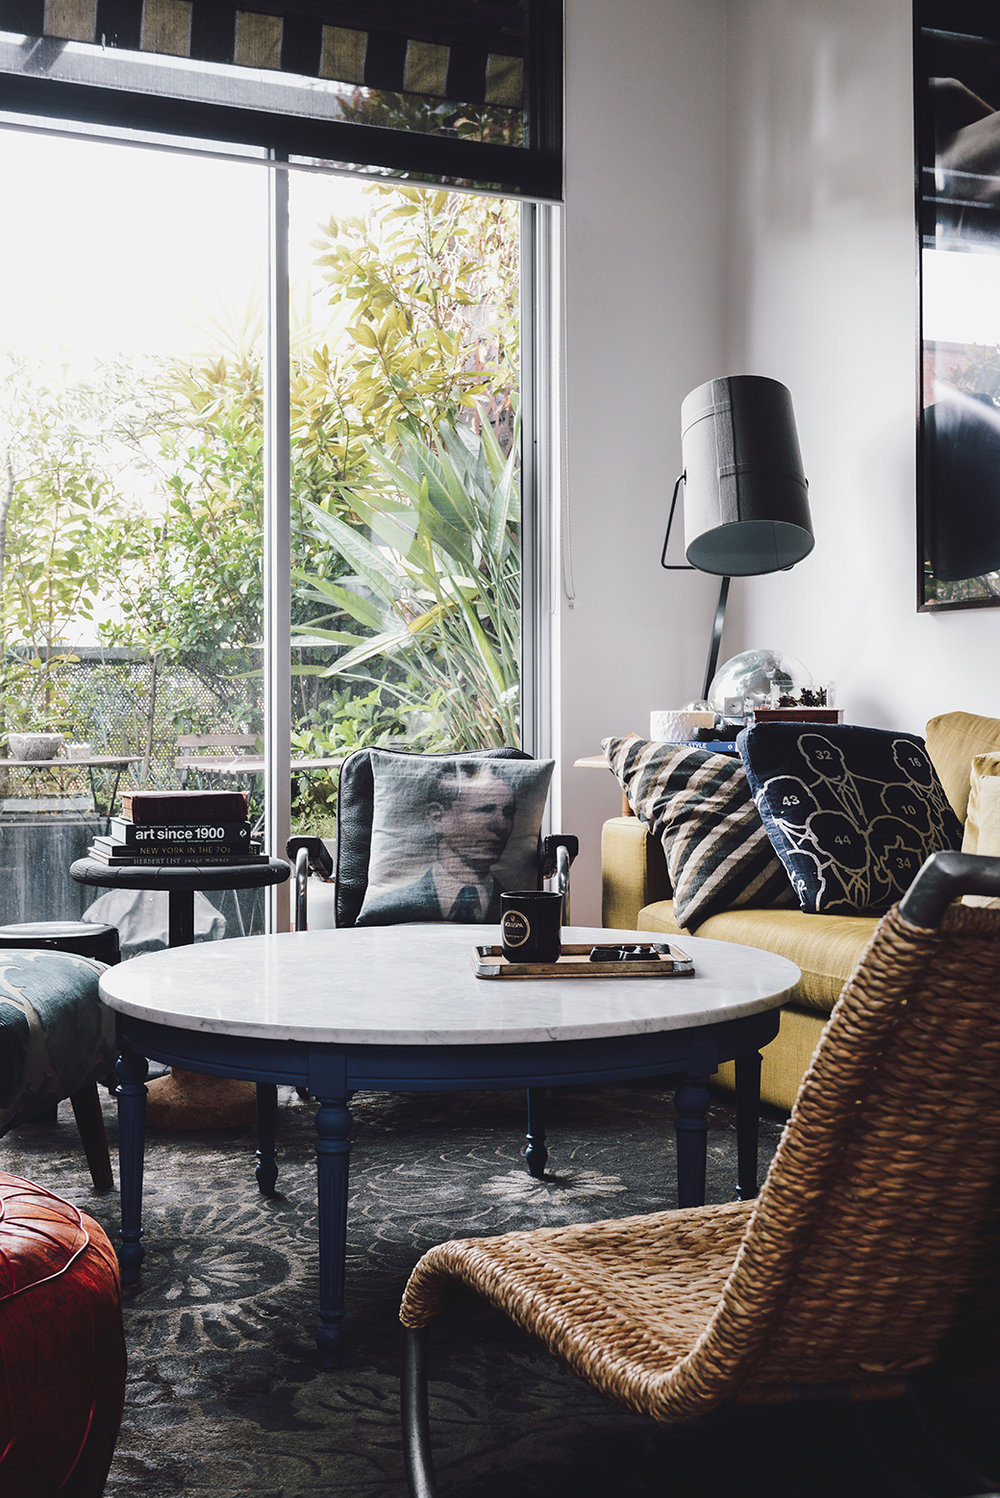 This is a very masculine – and maximalist – space. Thrift-shop chic meets vintage finds, classic pieces join favorite treasures and things have a patina of age. The room is shot through with blues and greys and interesting textures. It looks comfortable and lived in and the owners say it is 'continually evolving'.